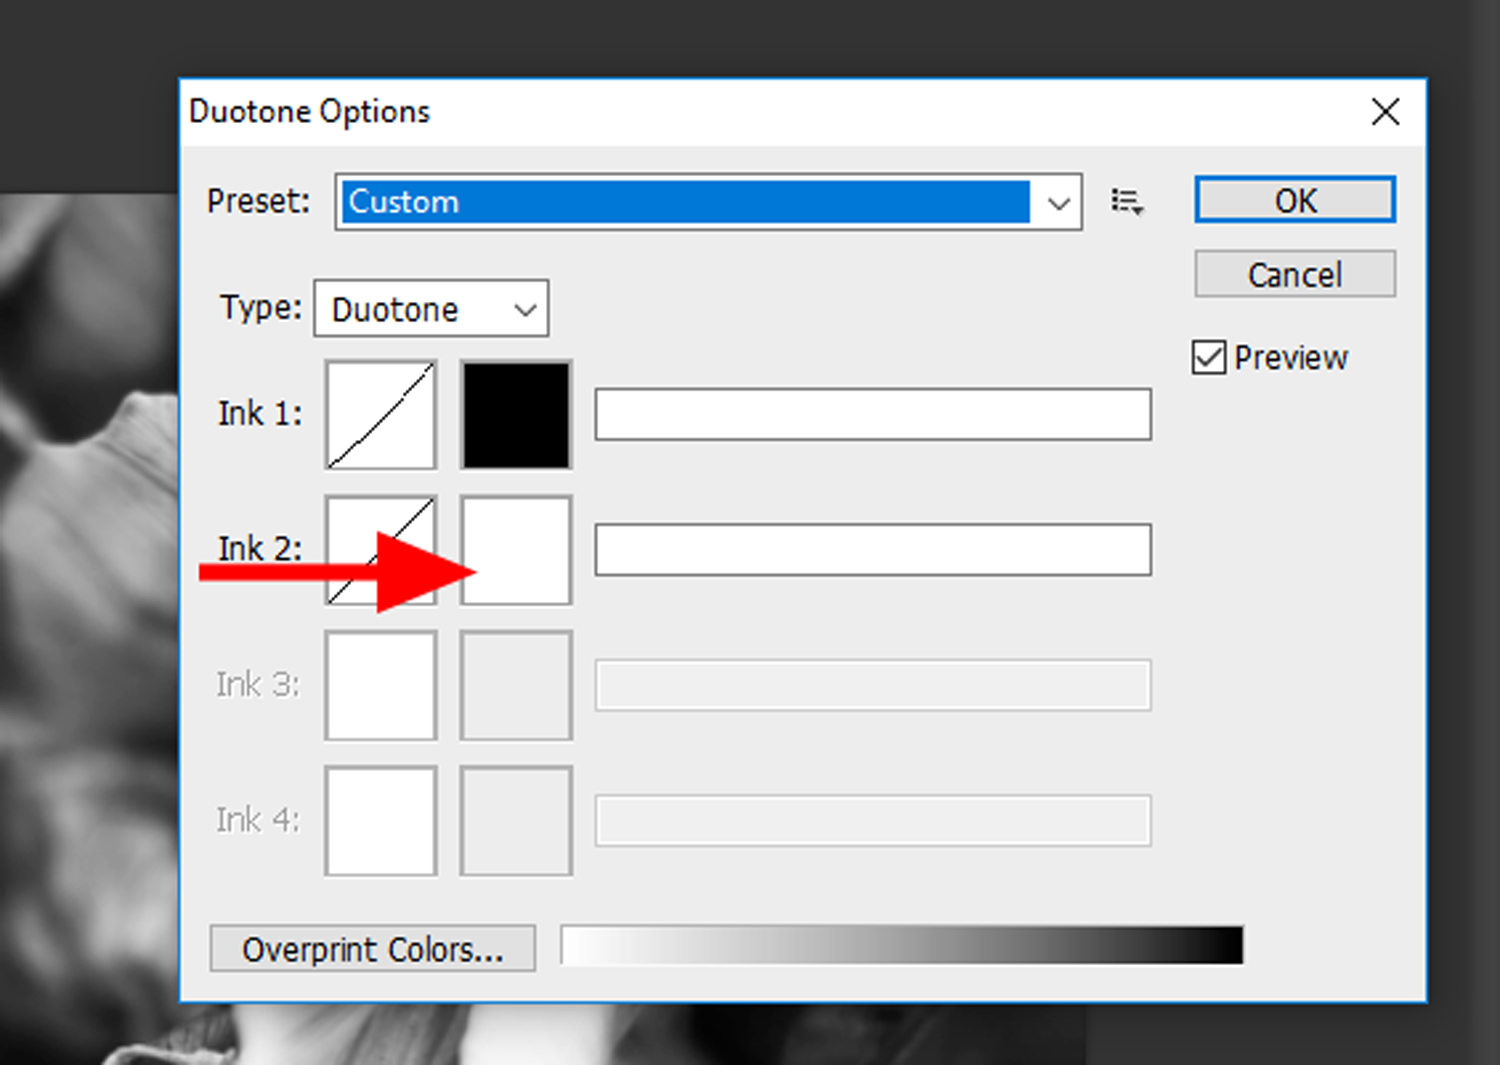 12 - How to Duotone a Photograph in Photoshop